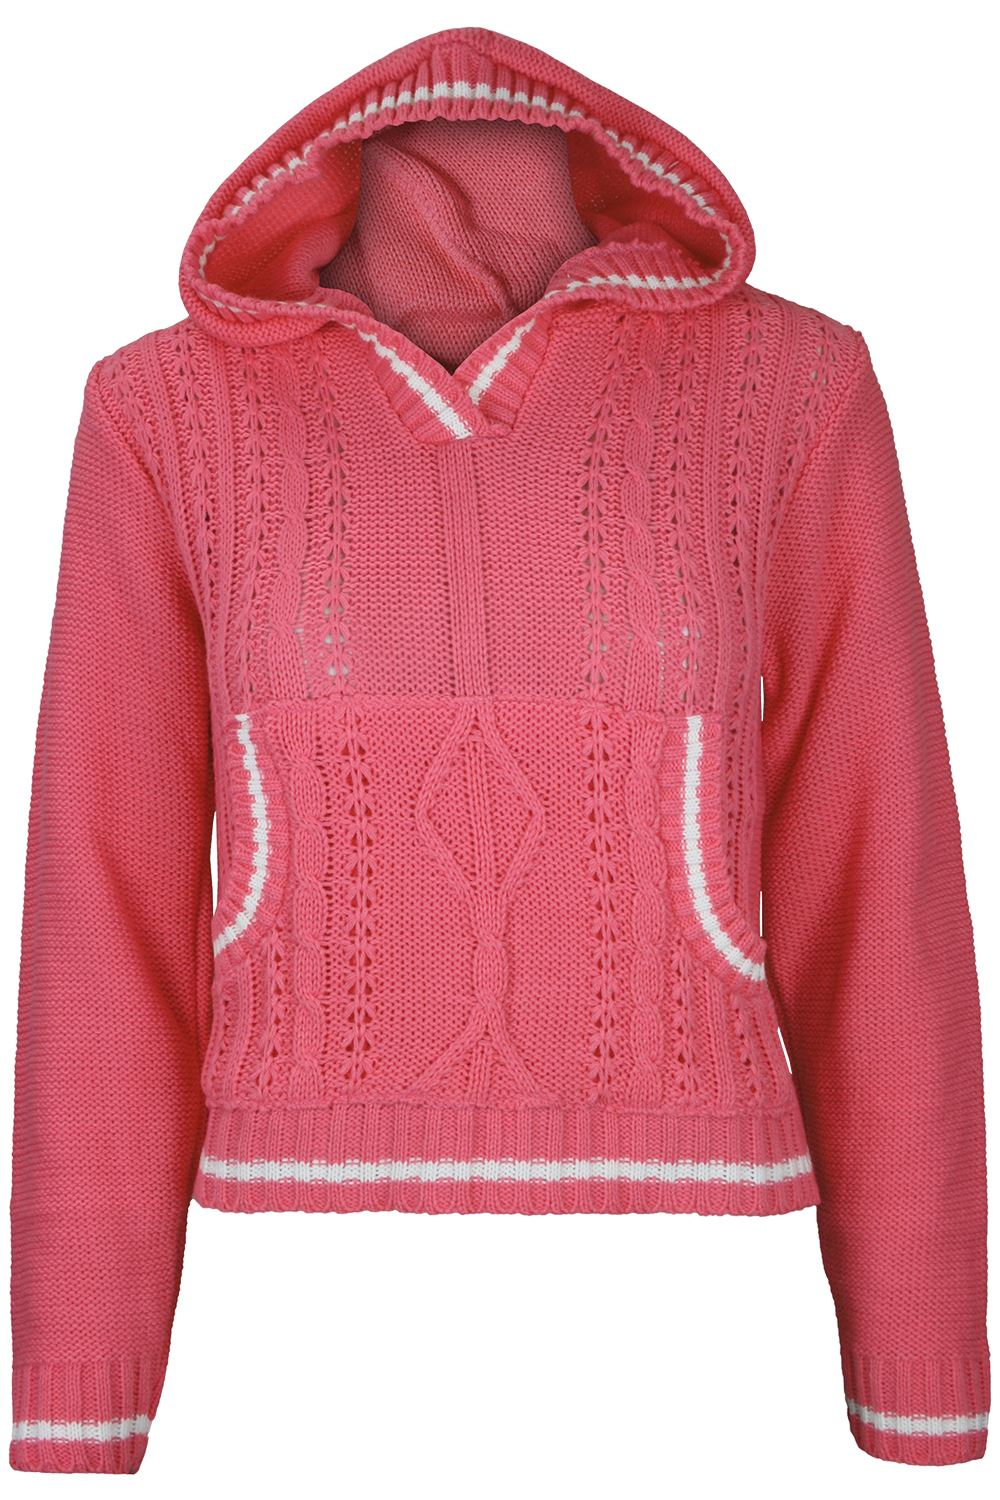 Womens Cricket Knit Crop Jumper Ladies Kangaroo Pocket Pullover Hoody Short T...